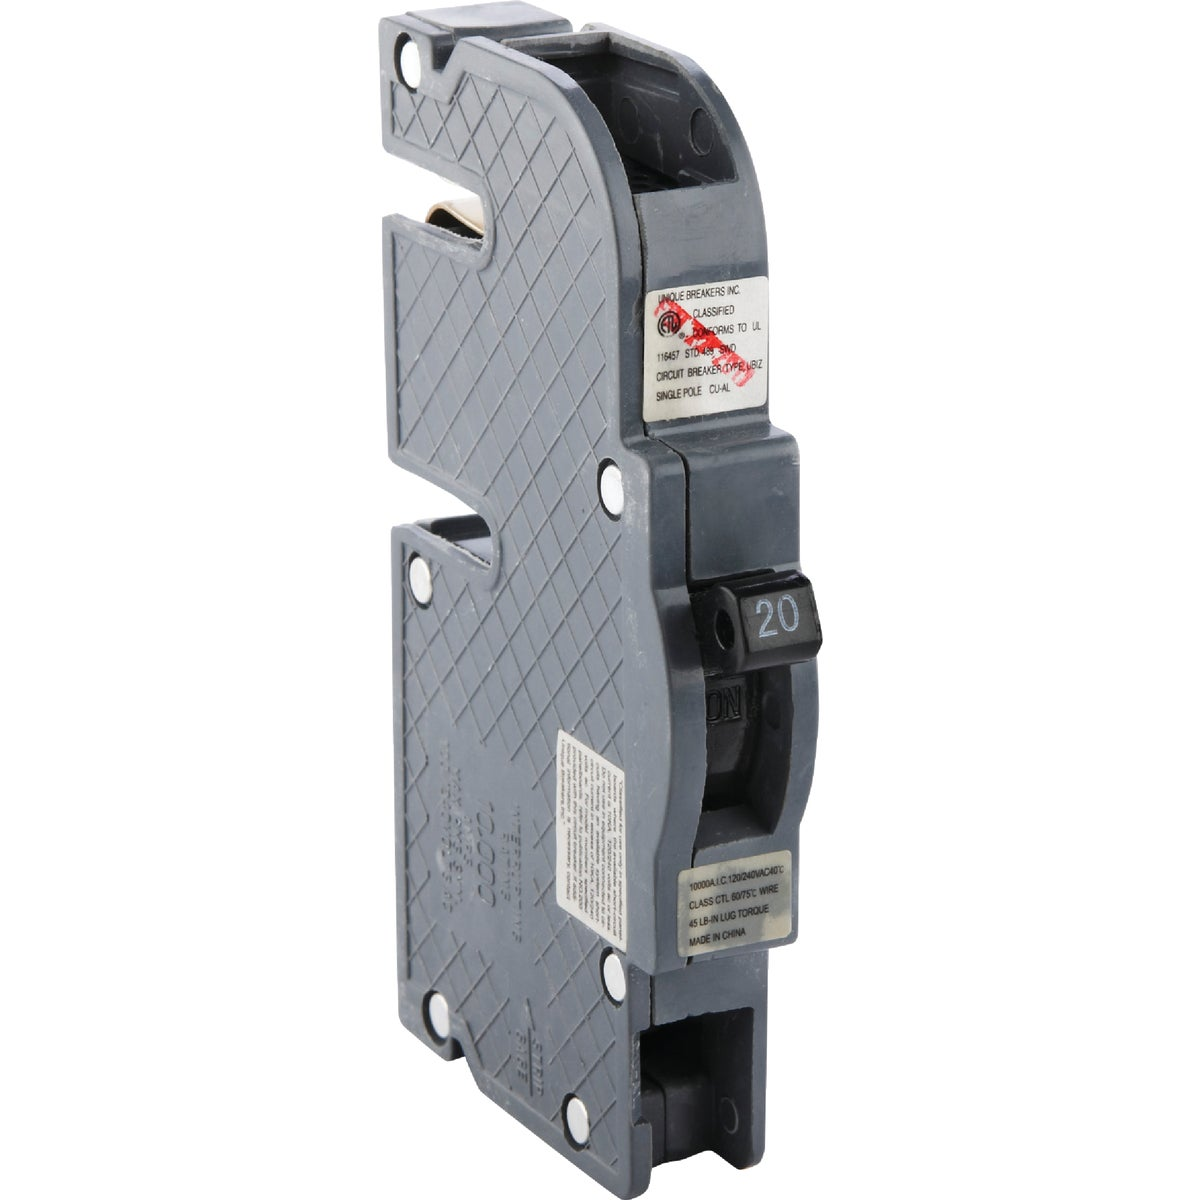 20A SP CIRCUIT BREAKER